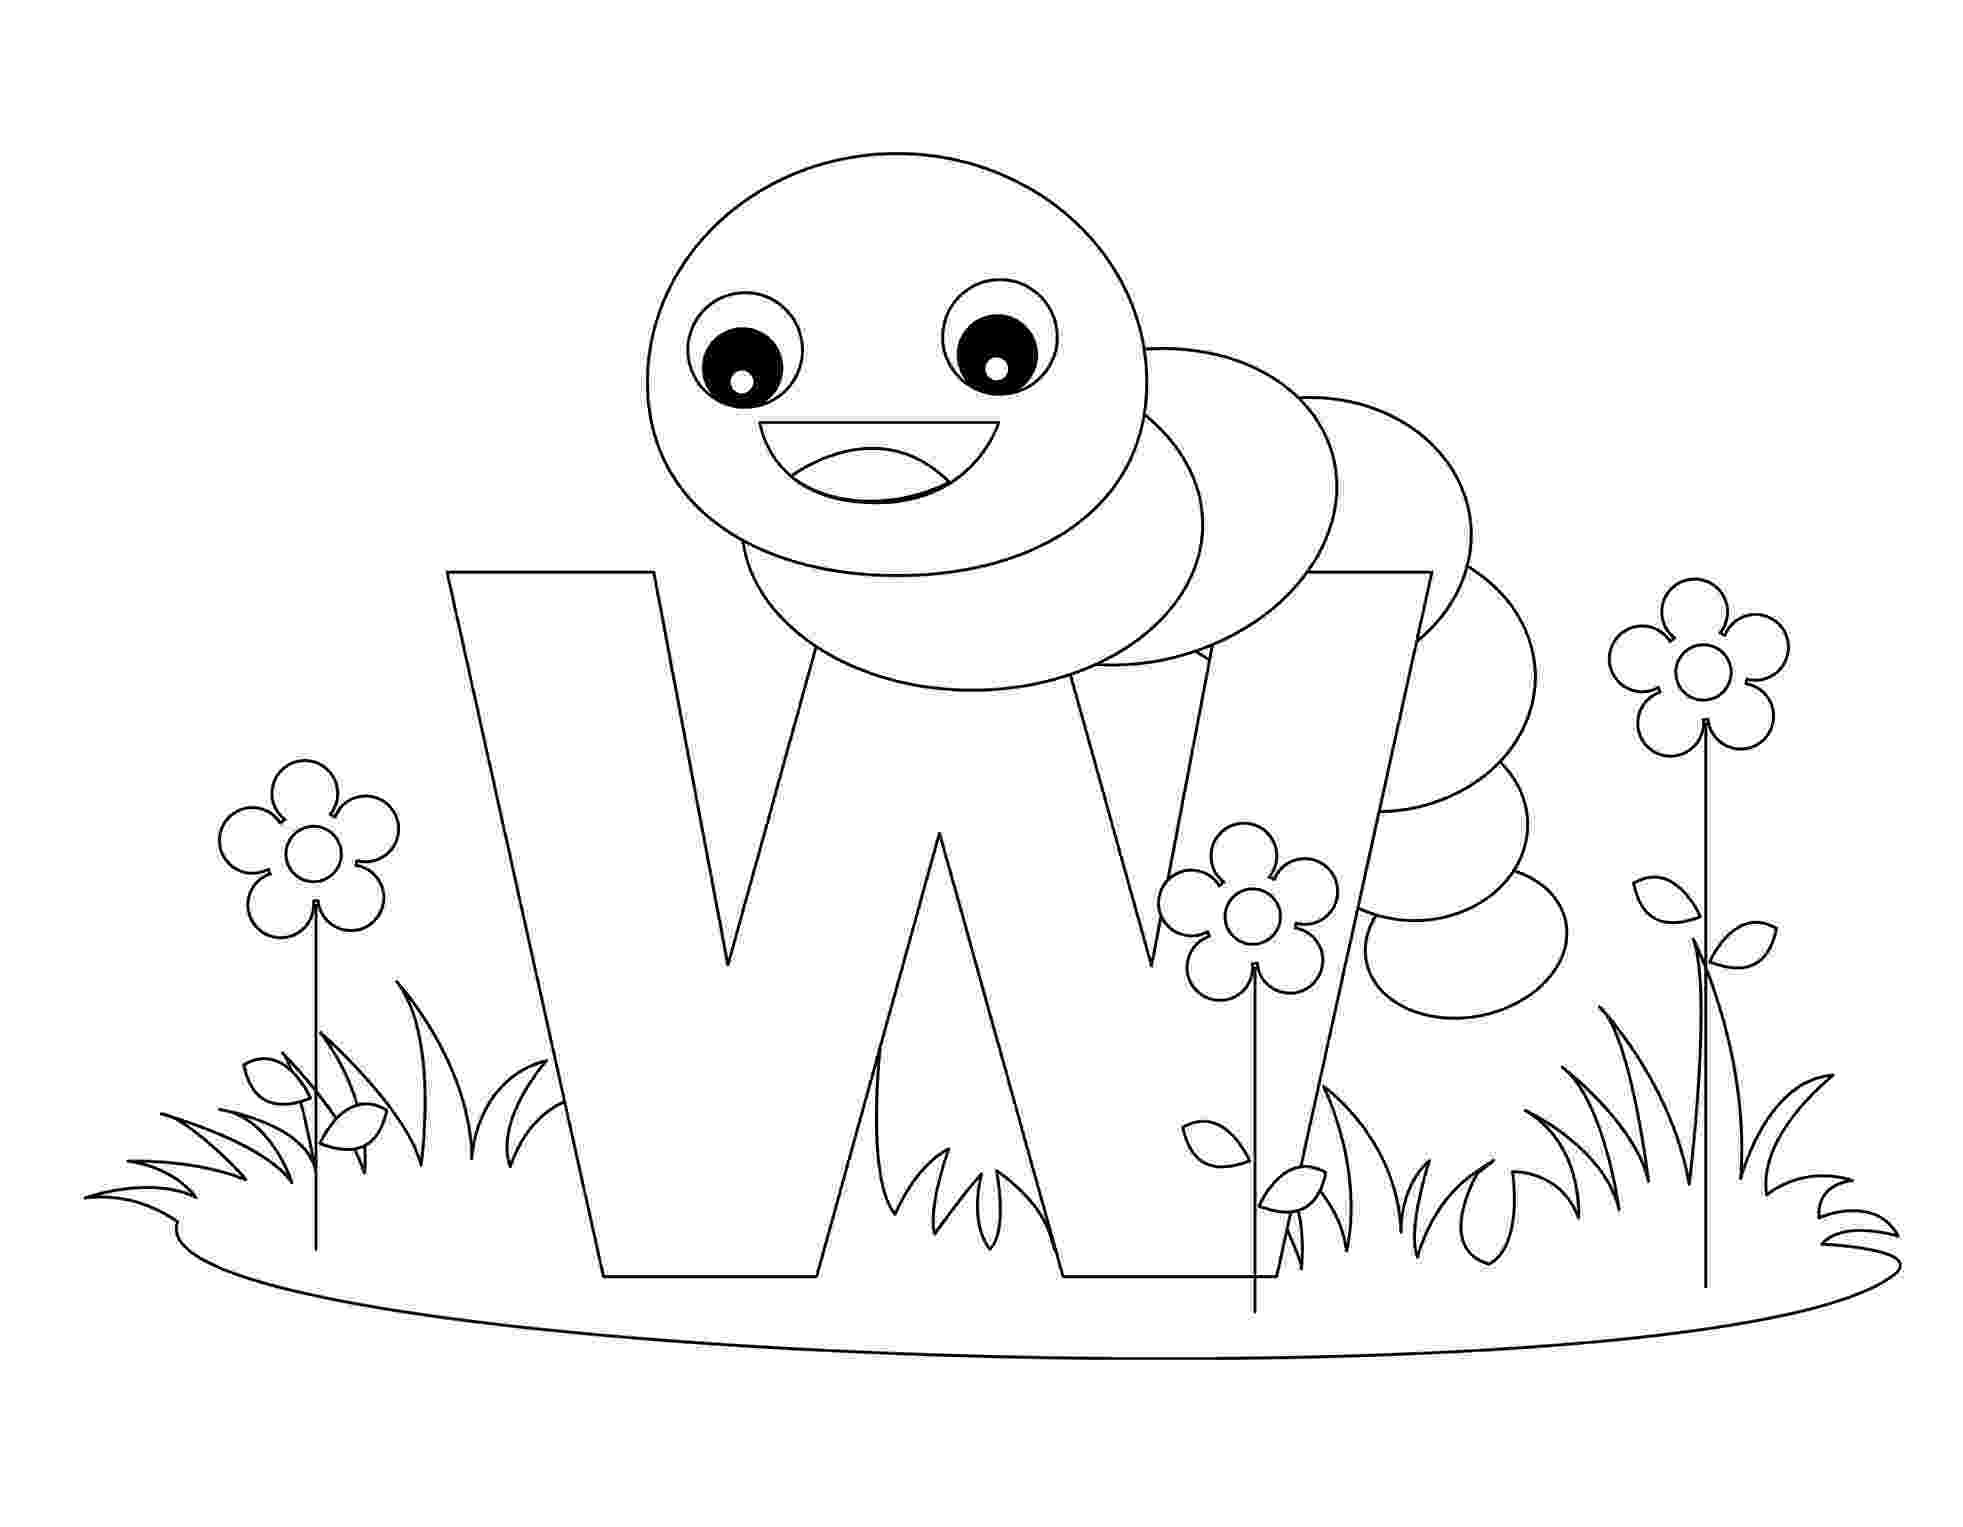 childrens colouring pages alphabet free printable alphabet coloring pages for kids best pages alphabet colouring childrens 1 1